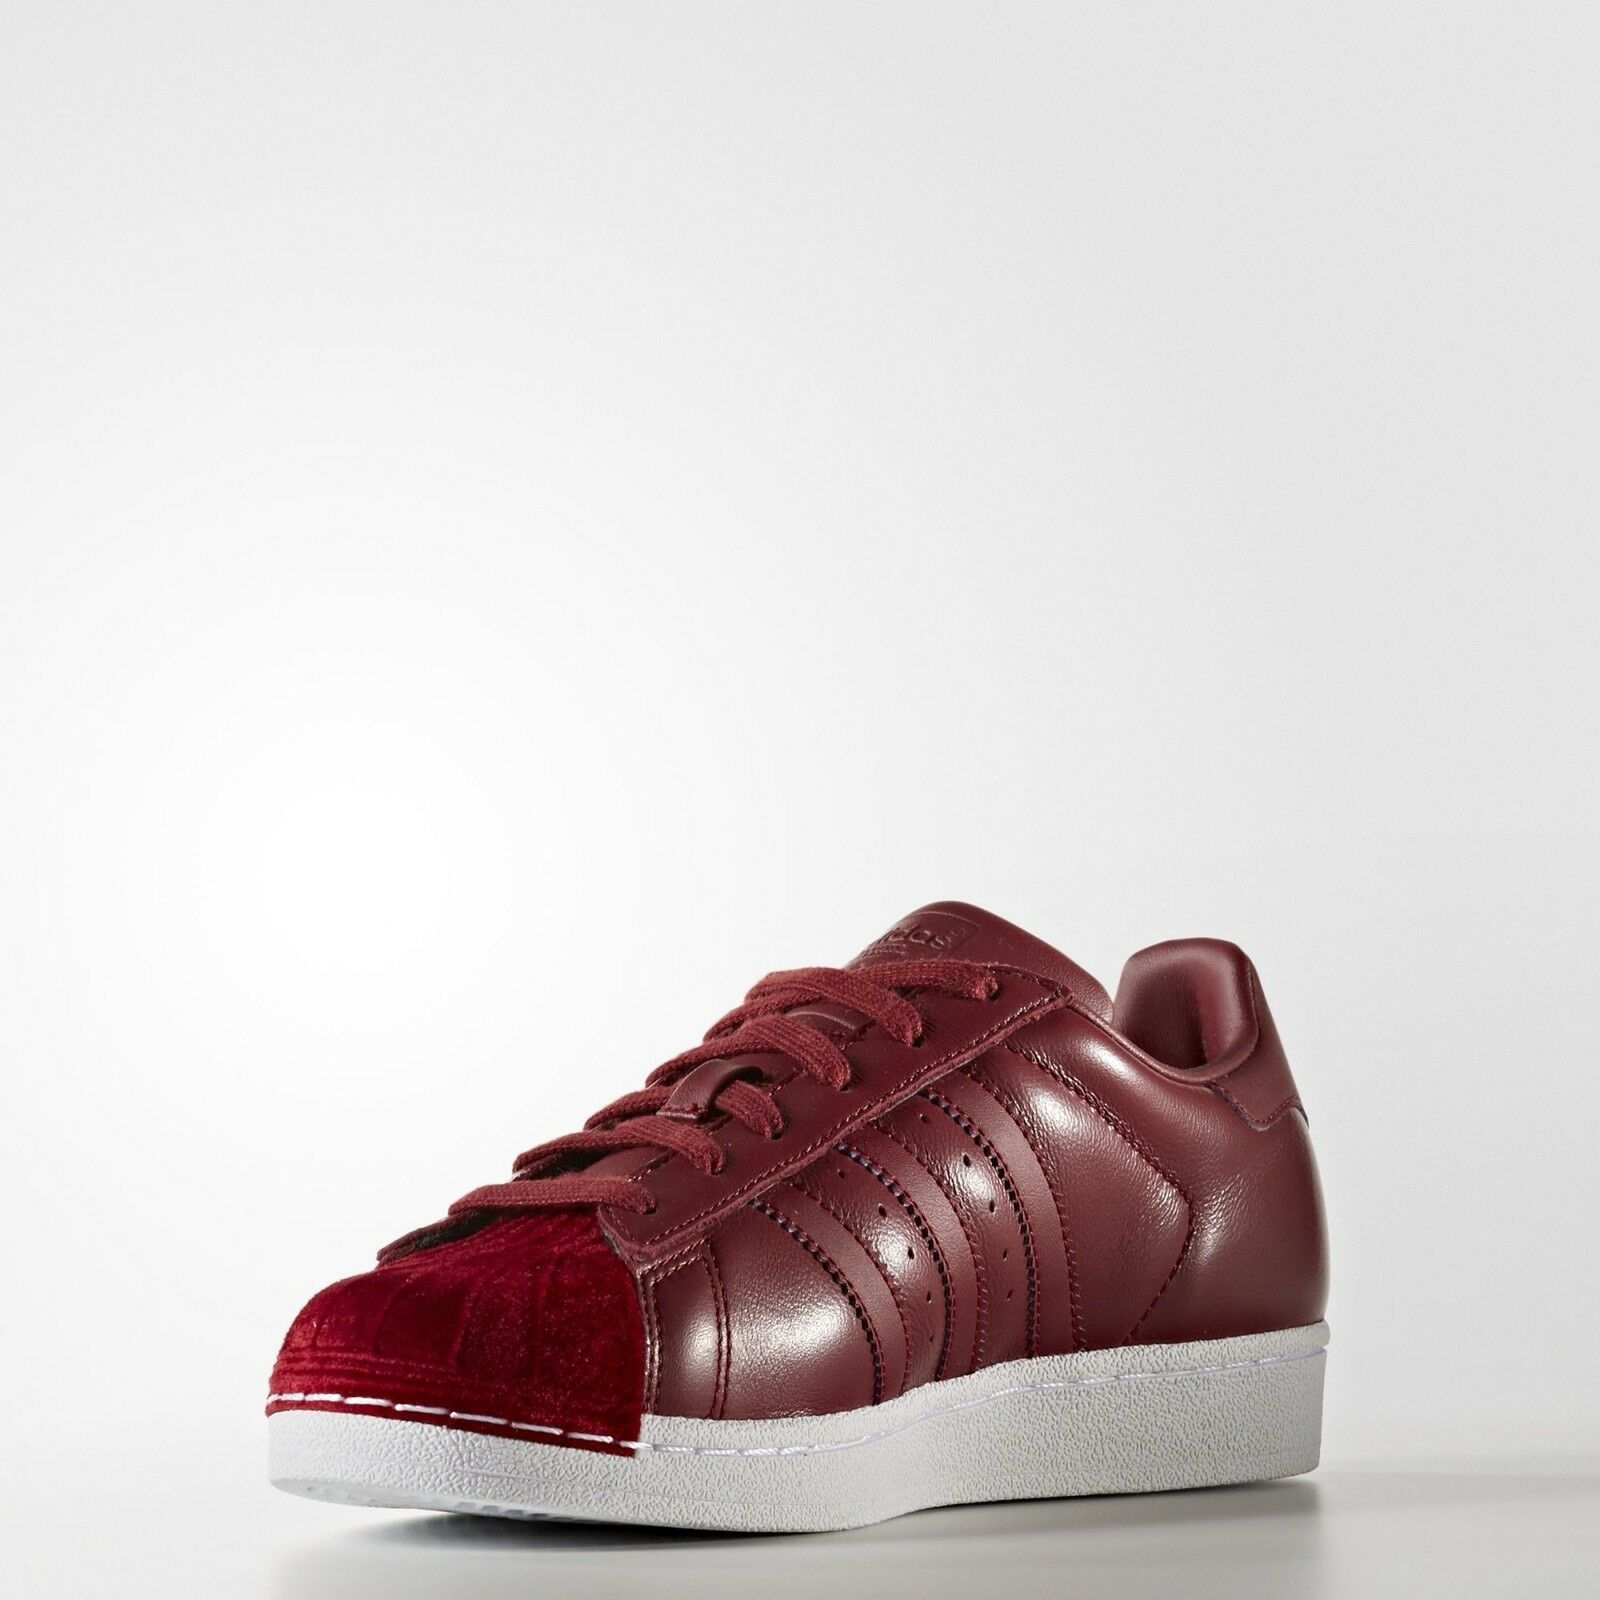 1710 ADIDAS SUPERSTAR BZ0644 COLLEGIATE BURGUNDY WOMEN'S RUNNING SHOES  1